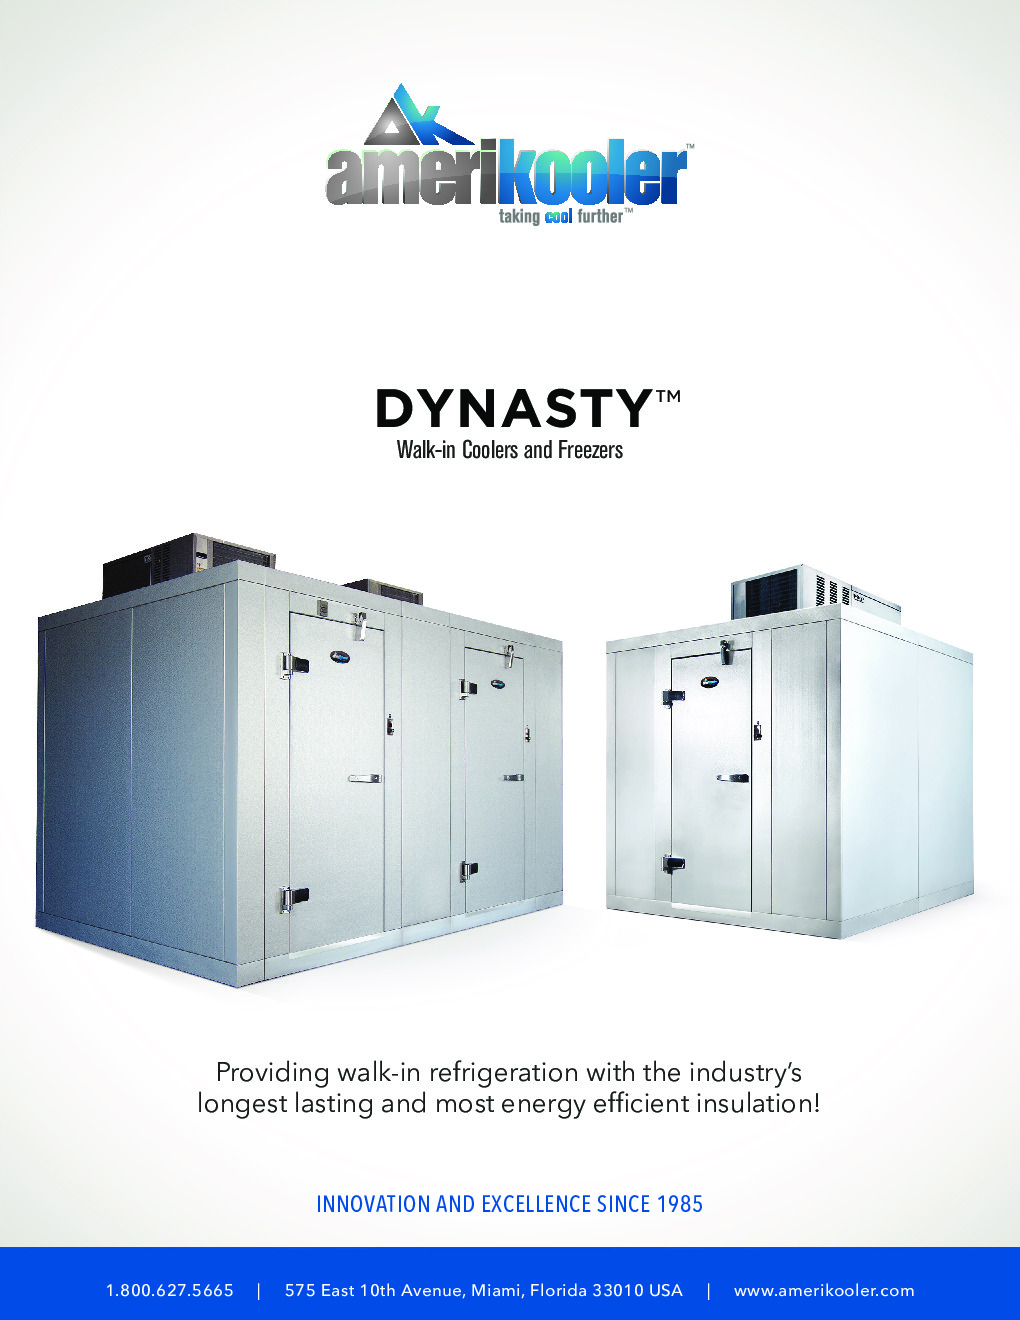 AmeriKooler DW091277F-5/7-RM 9' X 12' Walk-In Cooler, 7' L Cooler with Floor and 5' L Freezer, Remote